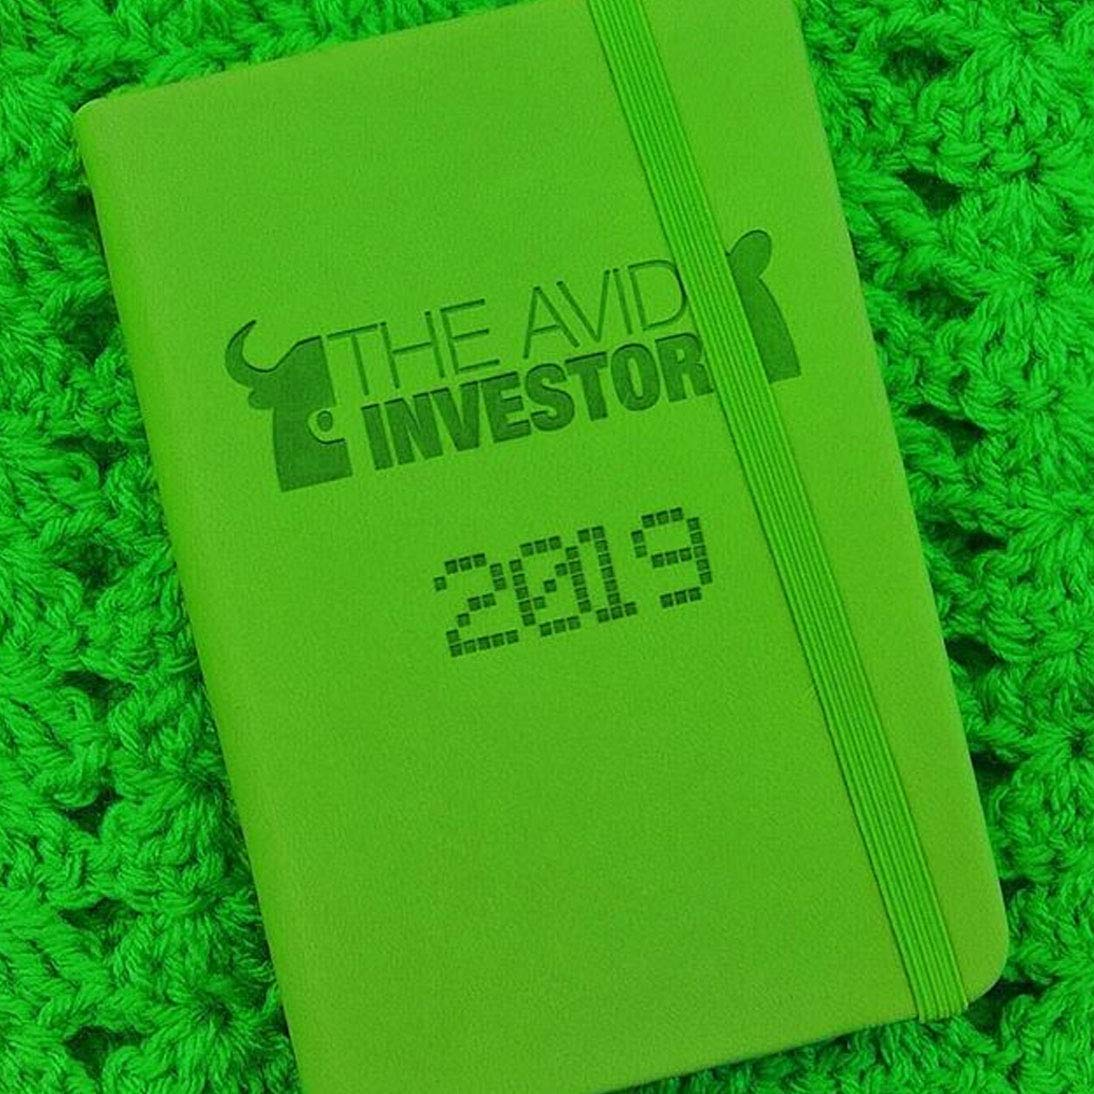 12 Month Planner 2019, Agenda Organizer, Investment Planner The Avid Investor (3.5